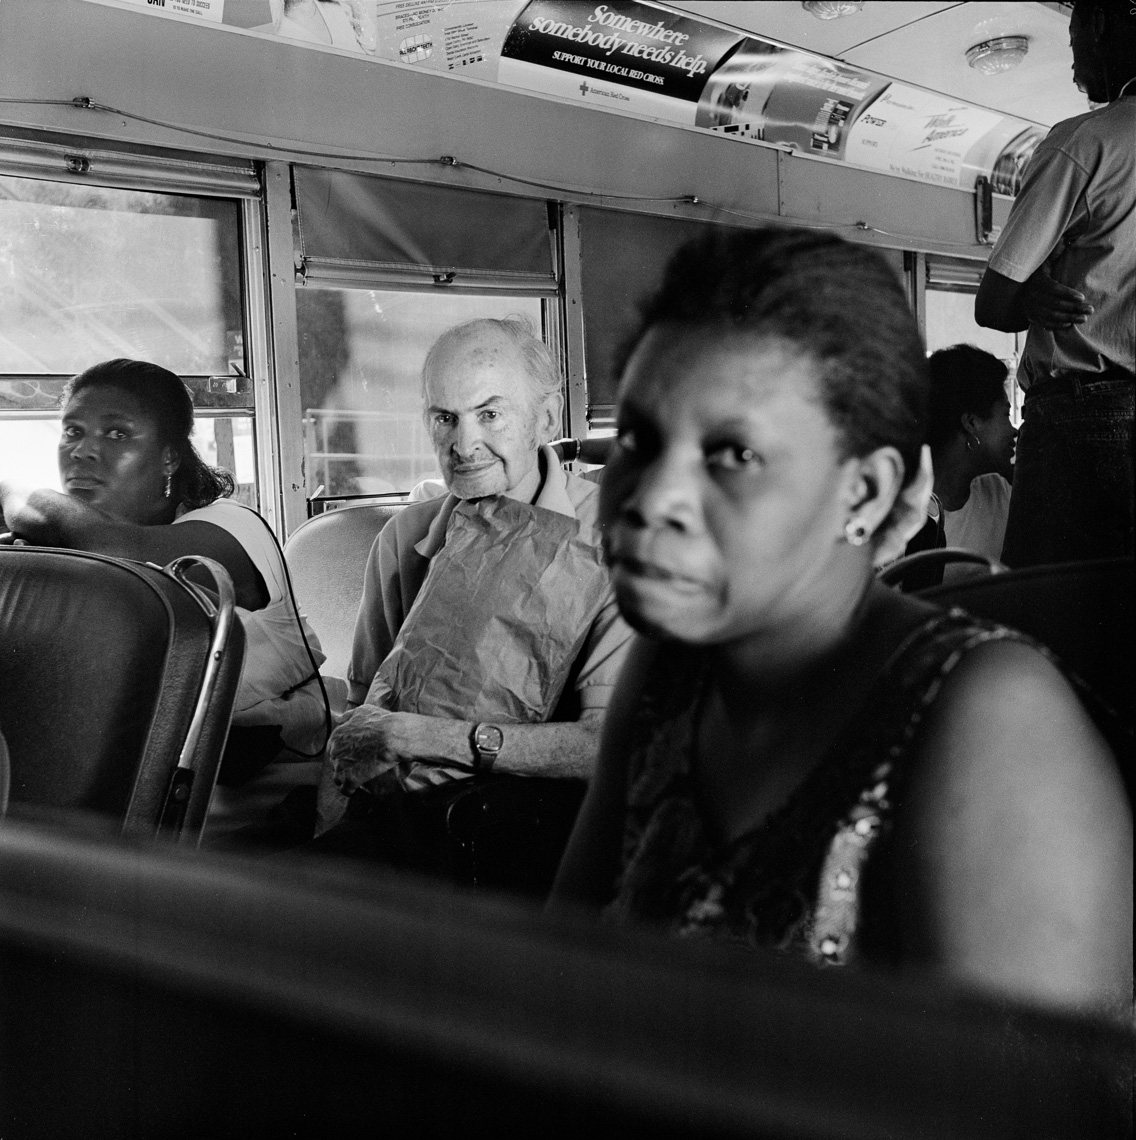 black-white-street-bus-passengers